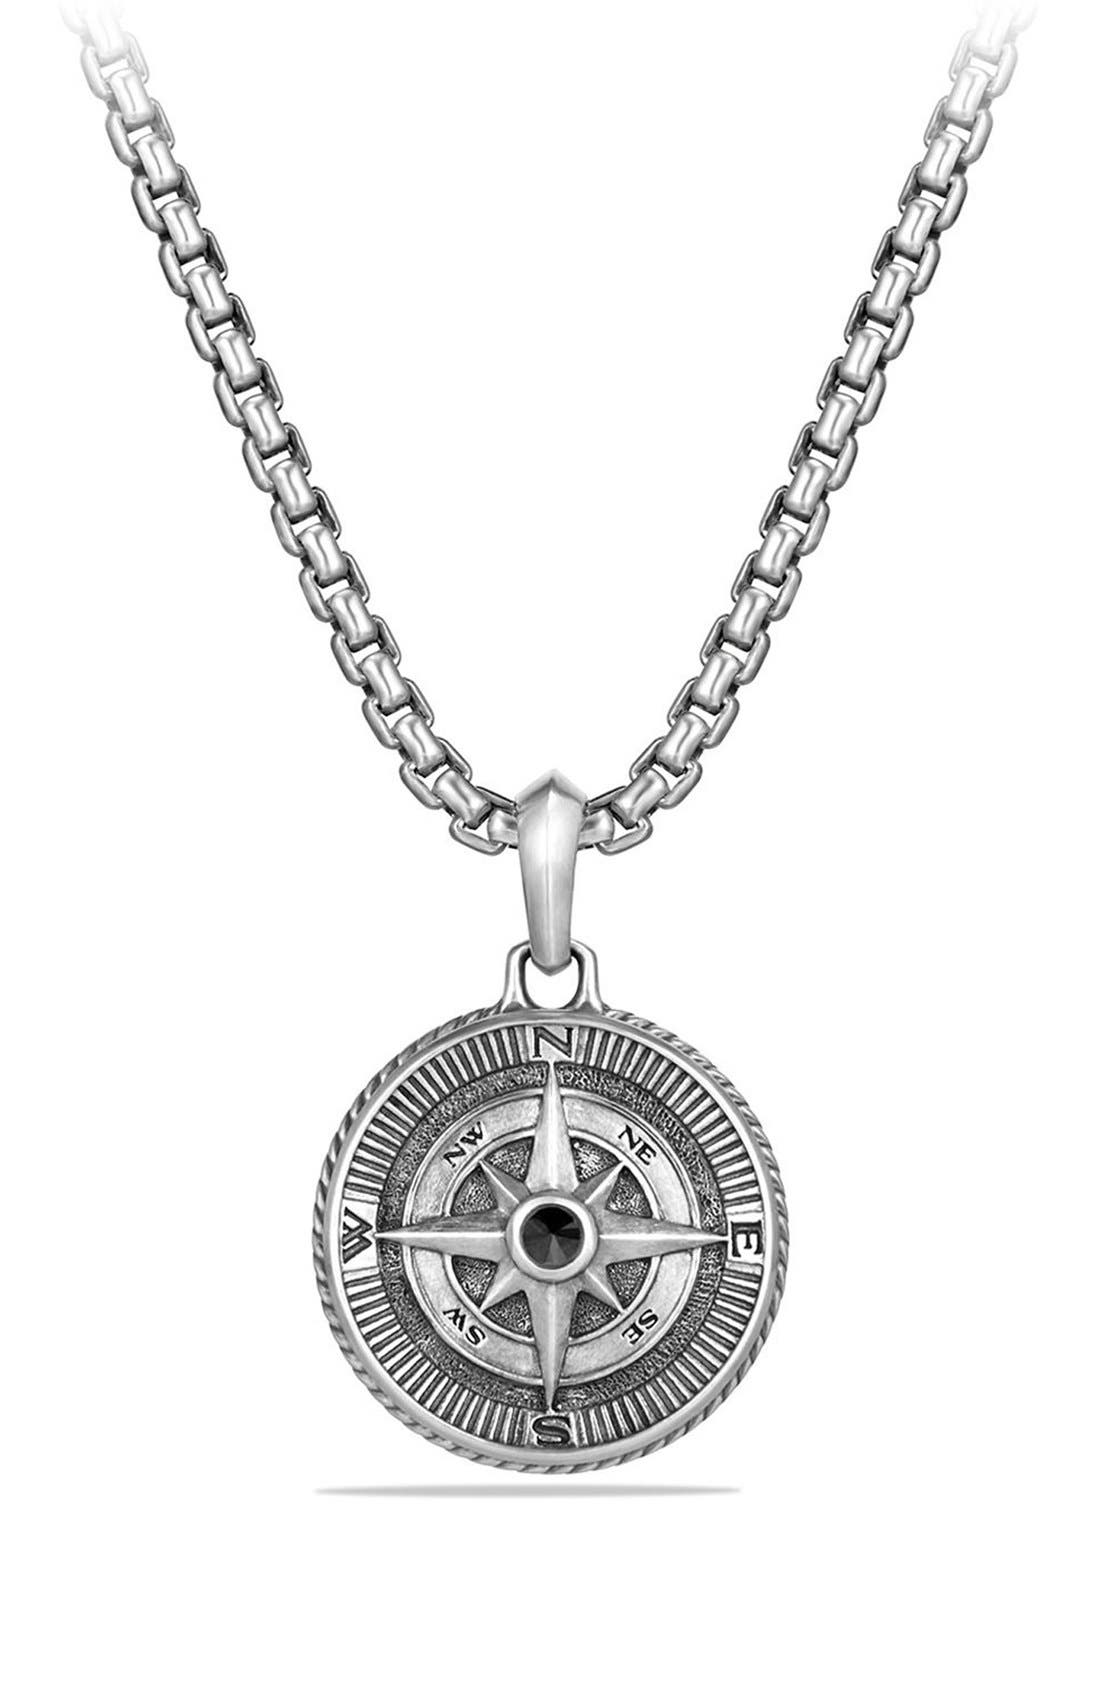 Main Image - David Yurman 'Maritime' Compass Amulet with Black Diamond